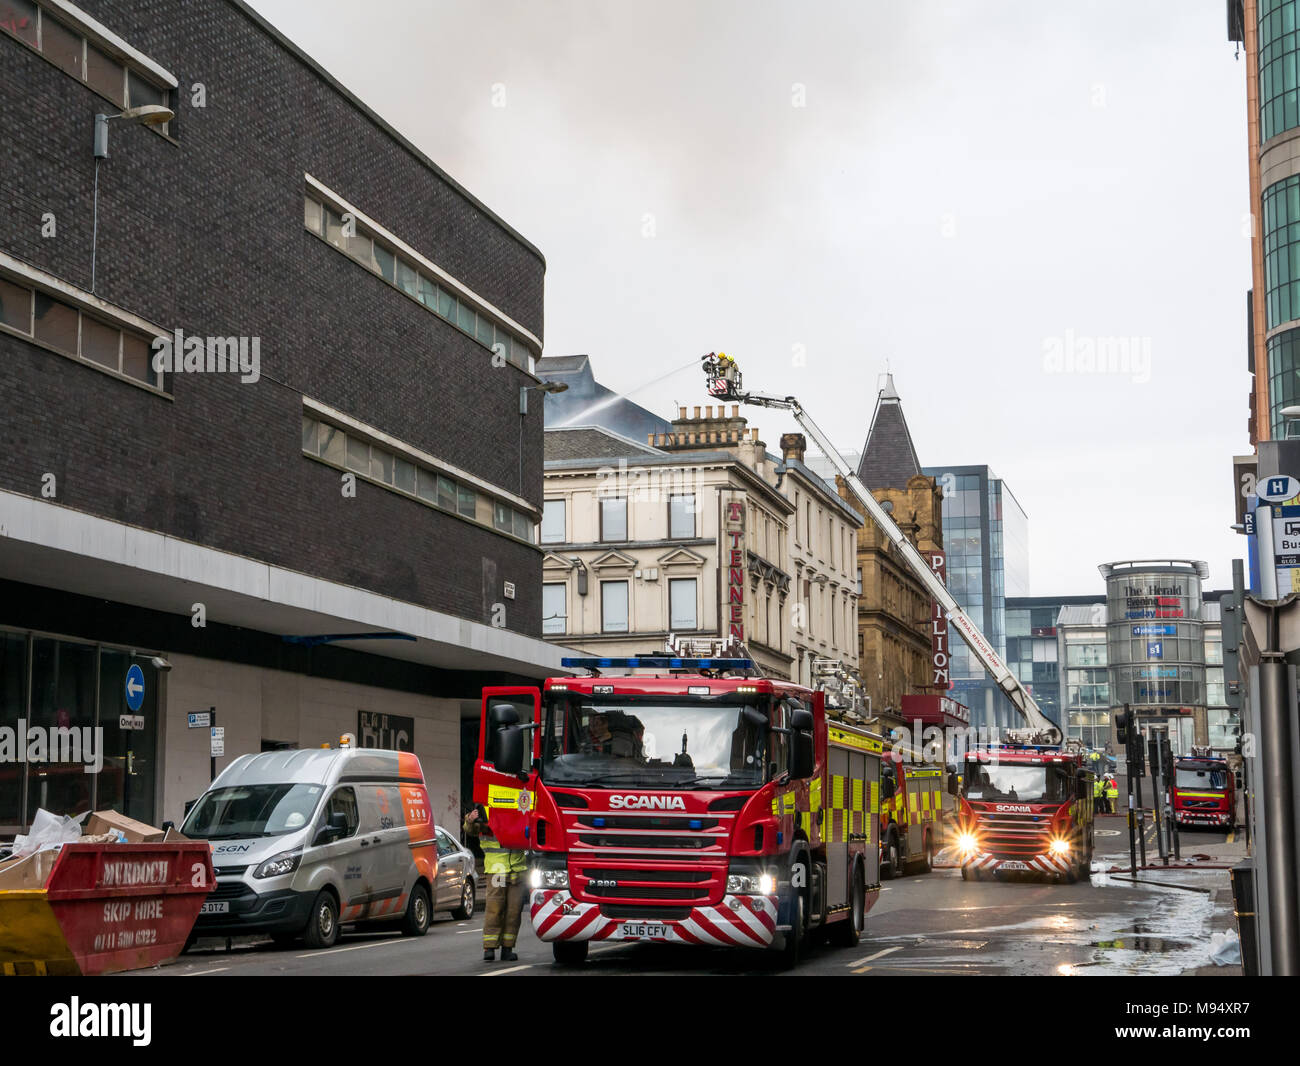 Renfield Street, Glasgow, Scotland, United Kingdom, 22nd March 2018. A major fire involving multiple buildings closes streets in central Glasgow.  Firefighters and fire engines battle the blaze with high level ladders - Stock Image